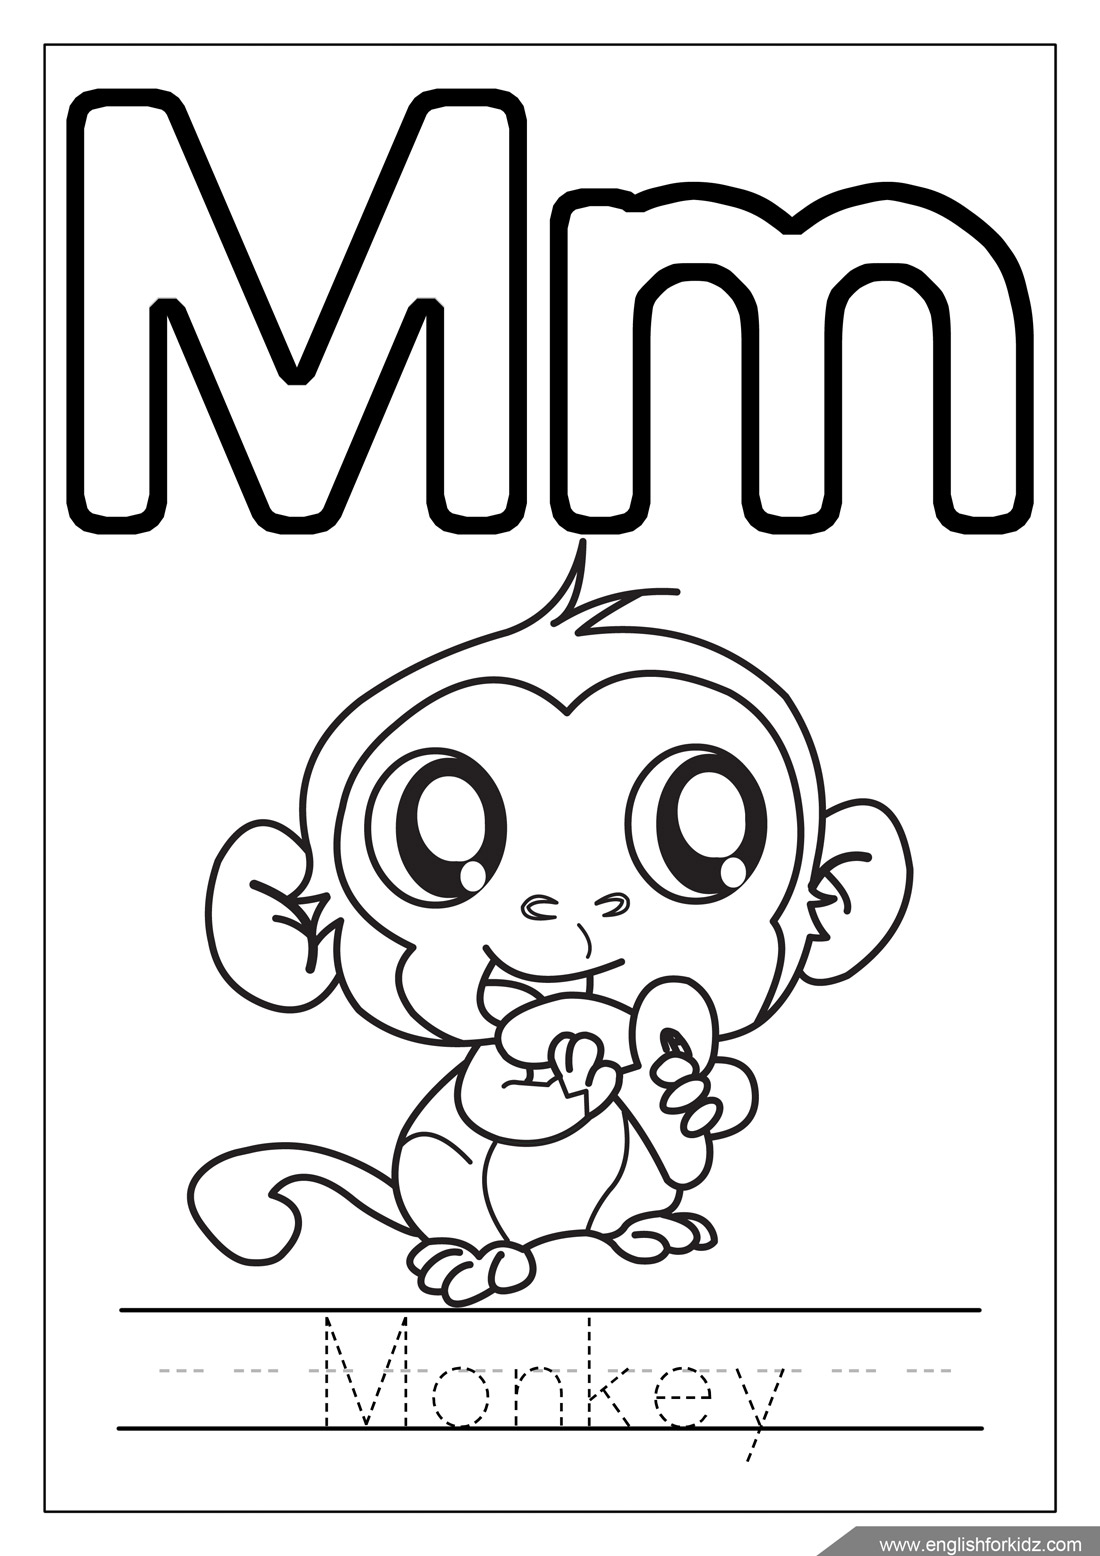 Alphabet coloring pages letters k t for Alphabet pages to color